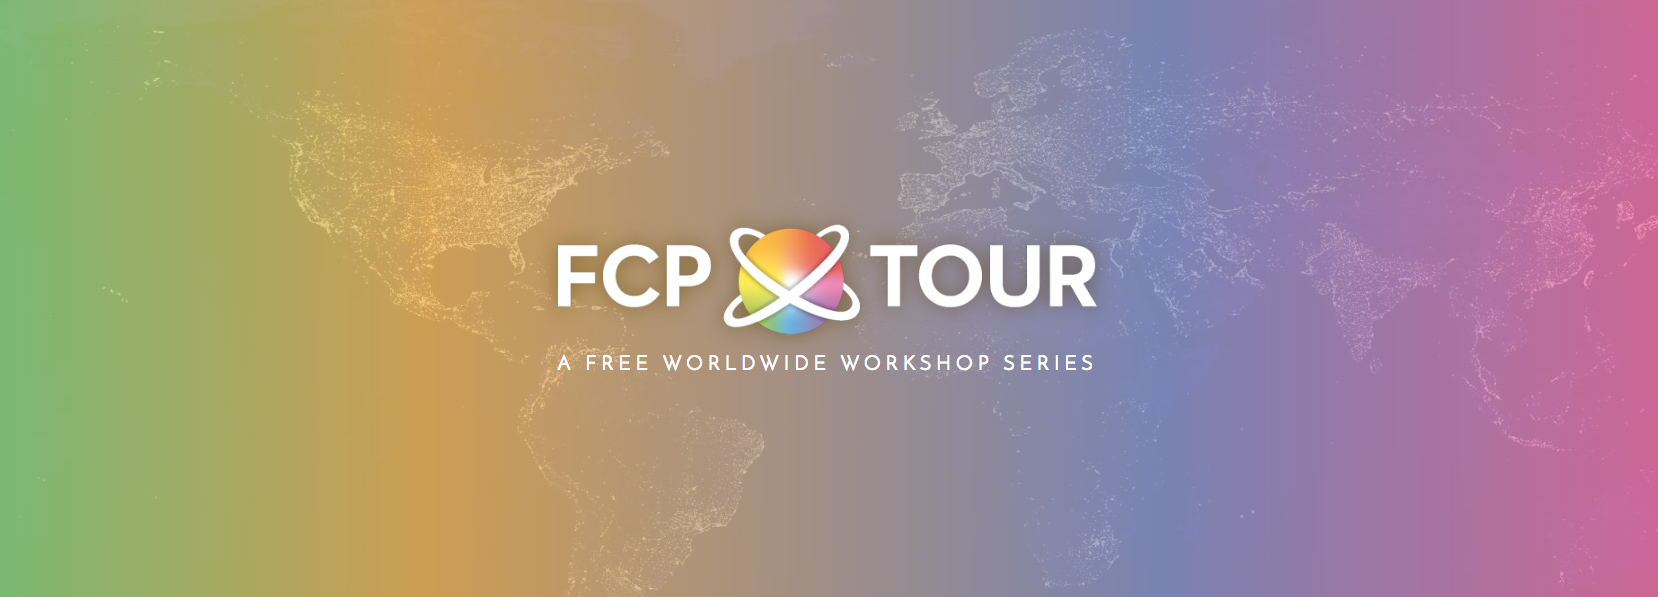 FCPXTOUR_WorldMap